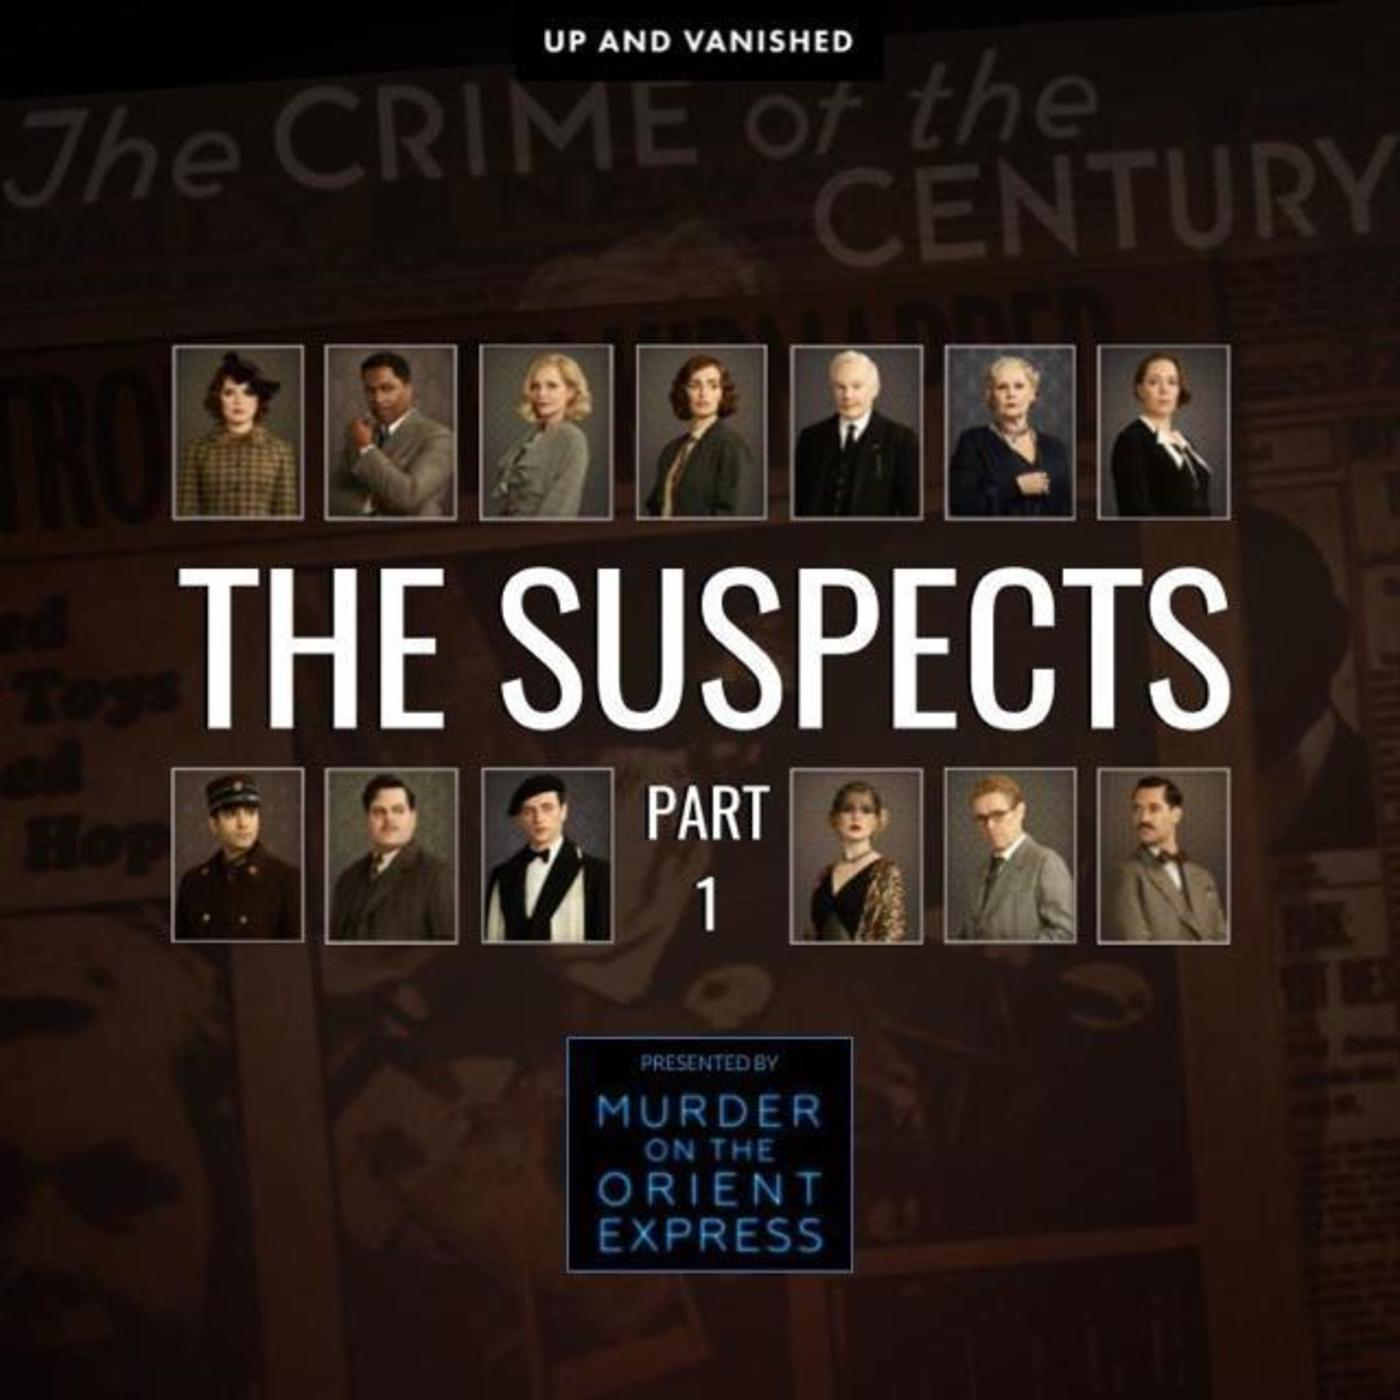 The Suspects : Part 1 - Presented by Up and Vanished and Murder On the Orient Express